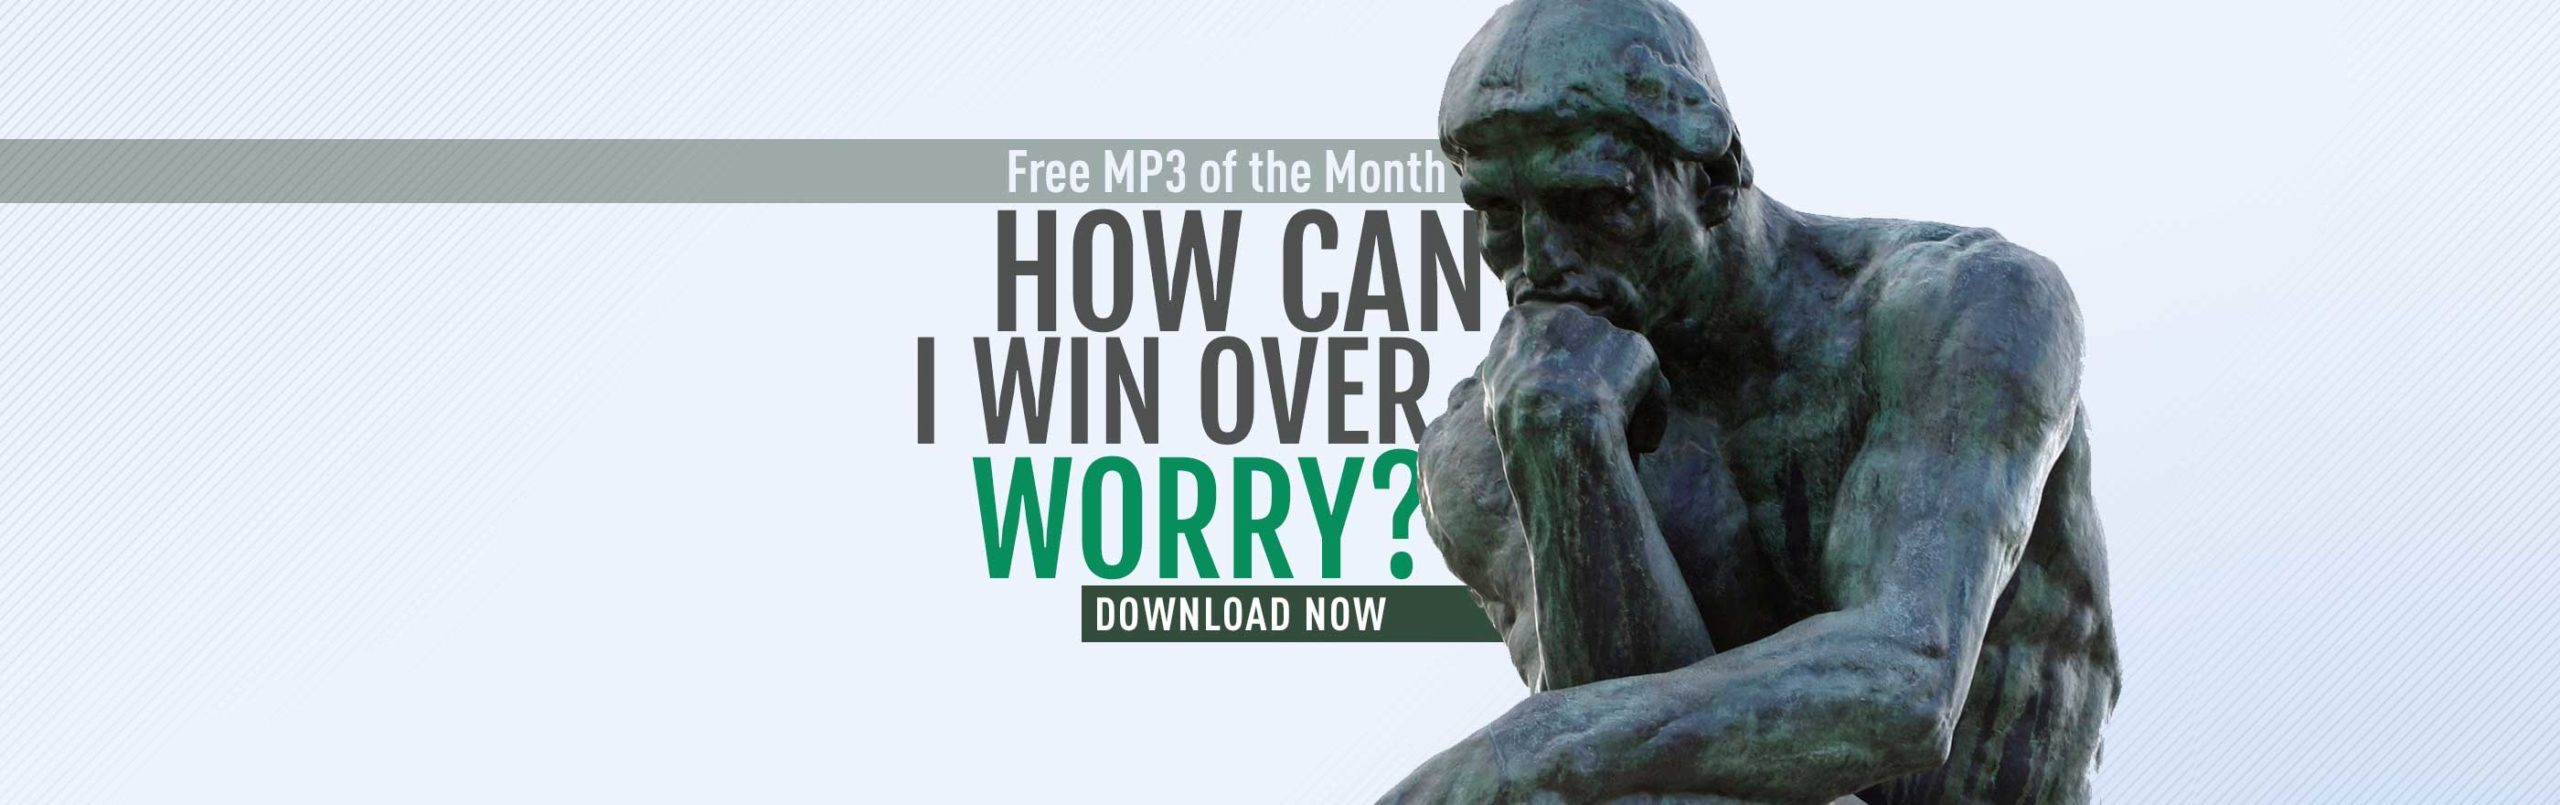 Free MP3: How Can I Win Over Worry?